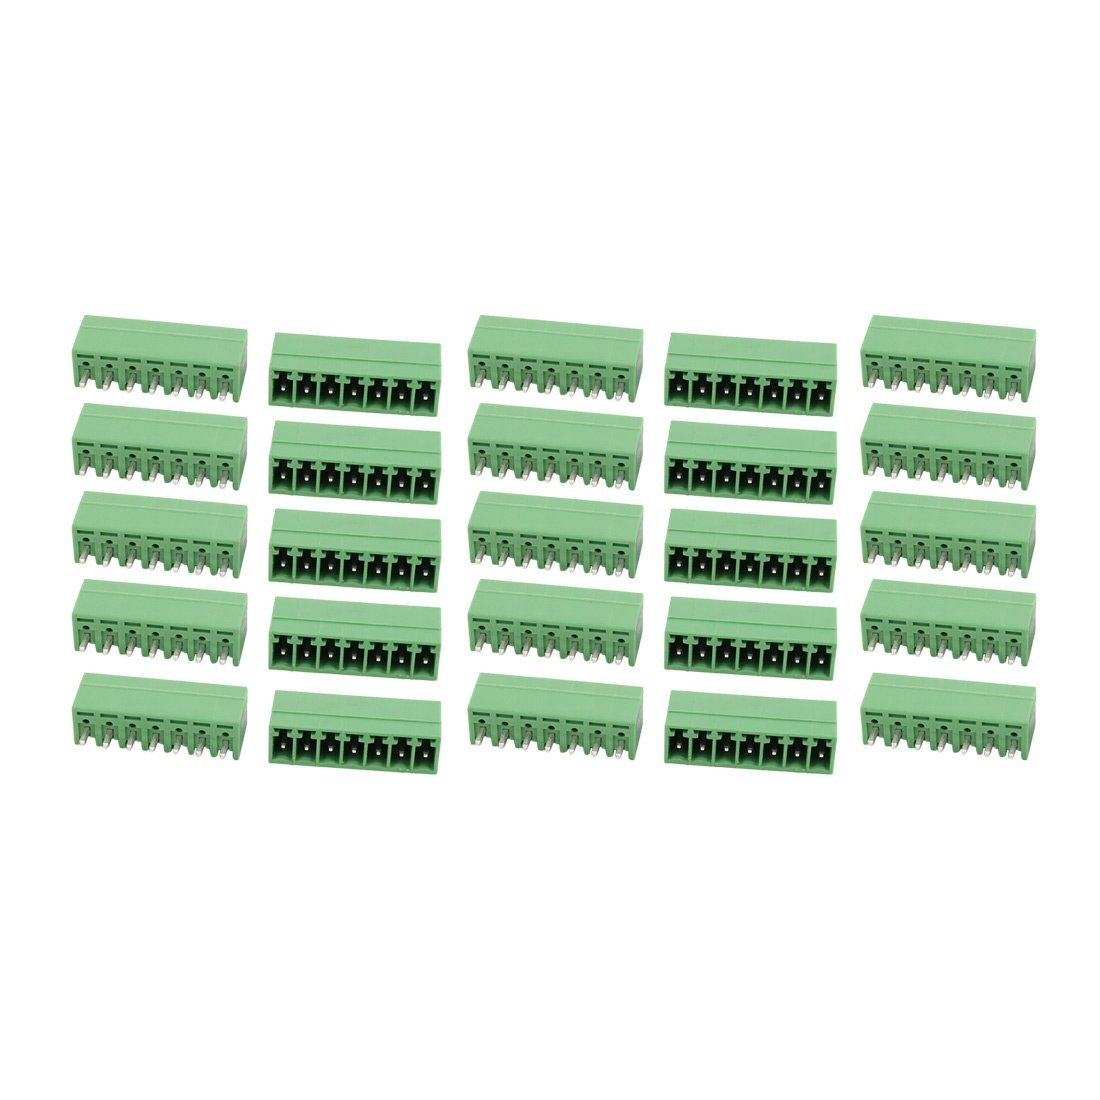 uxcell 25Pcs AC 300V 8A 3.5mm Pitch 7P Terminal Block Wire Connection for PCB Mounting